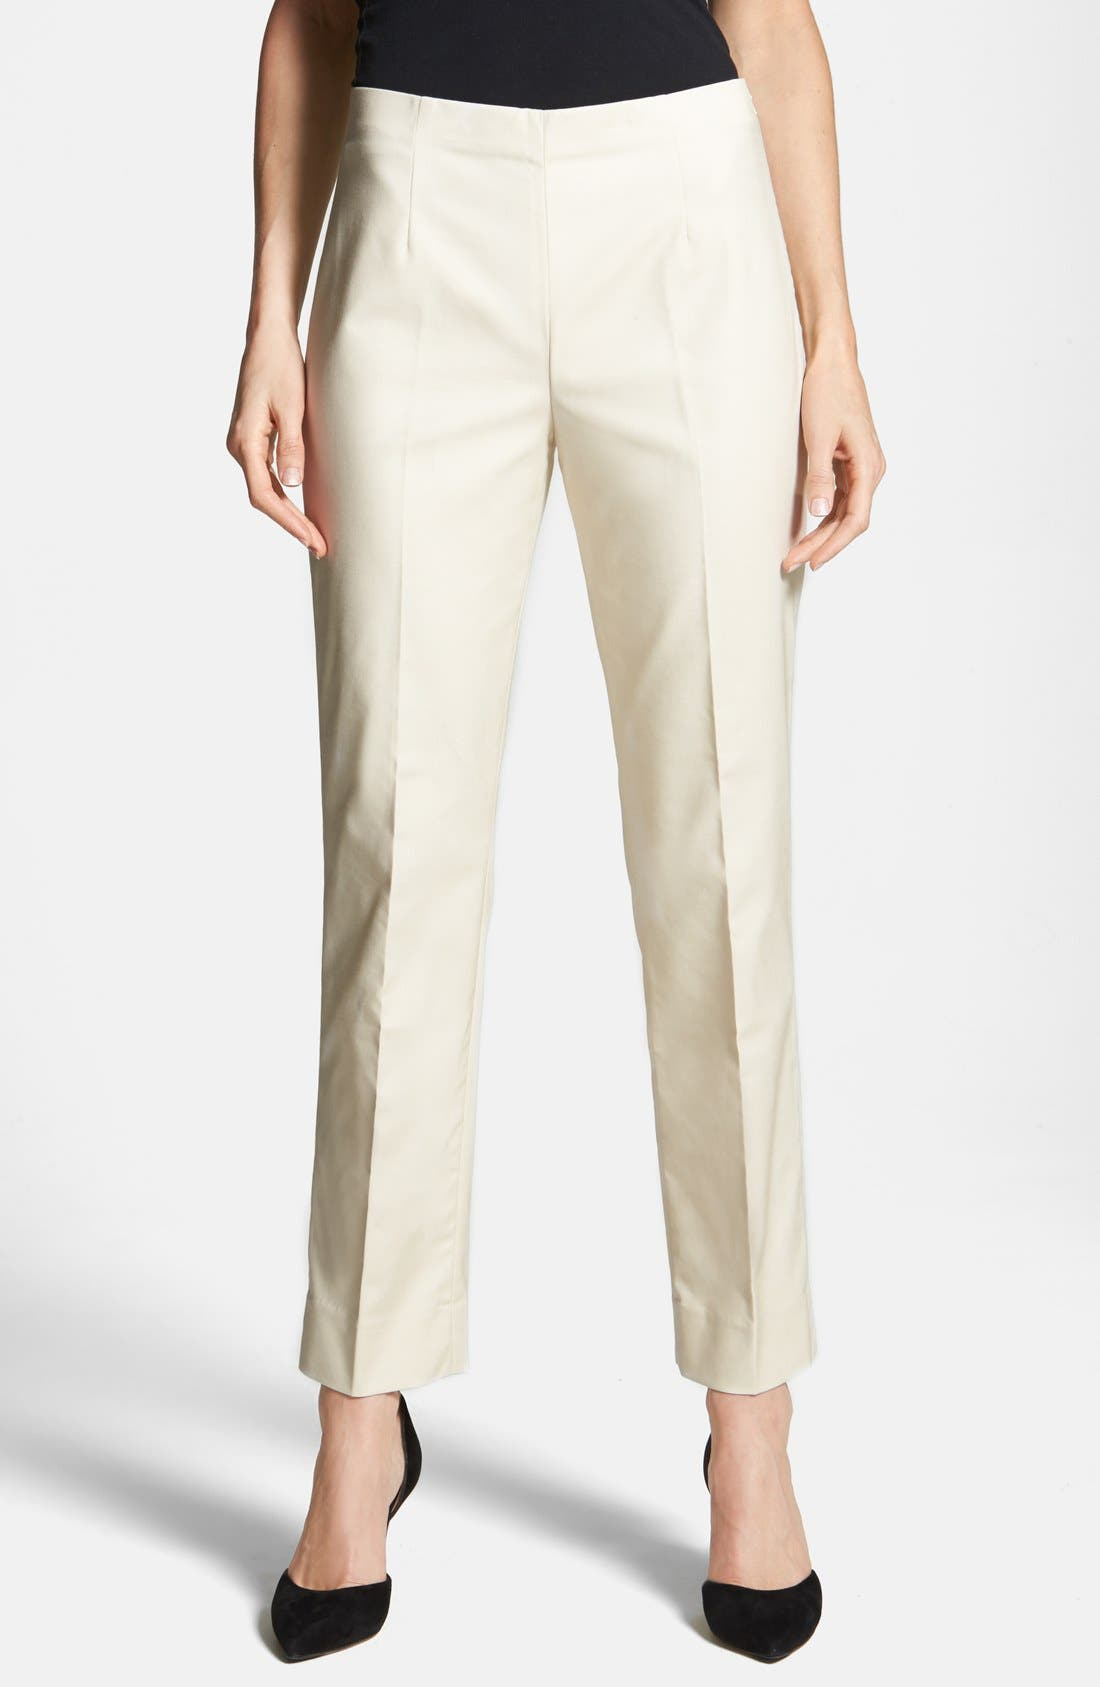 Alternate Image 1 Selected - NIC+ZOE 'The Perfect' Side Zip Ankle Pants (Petite)